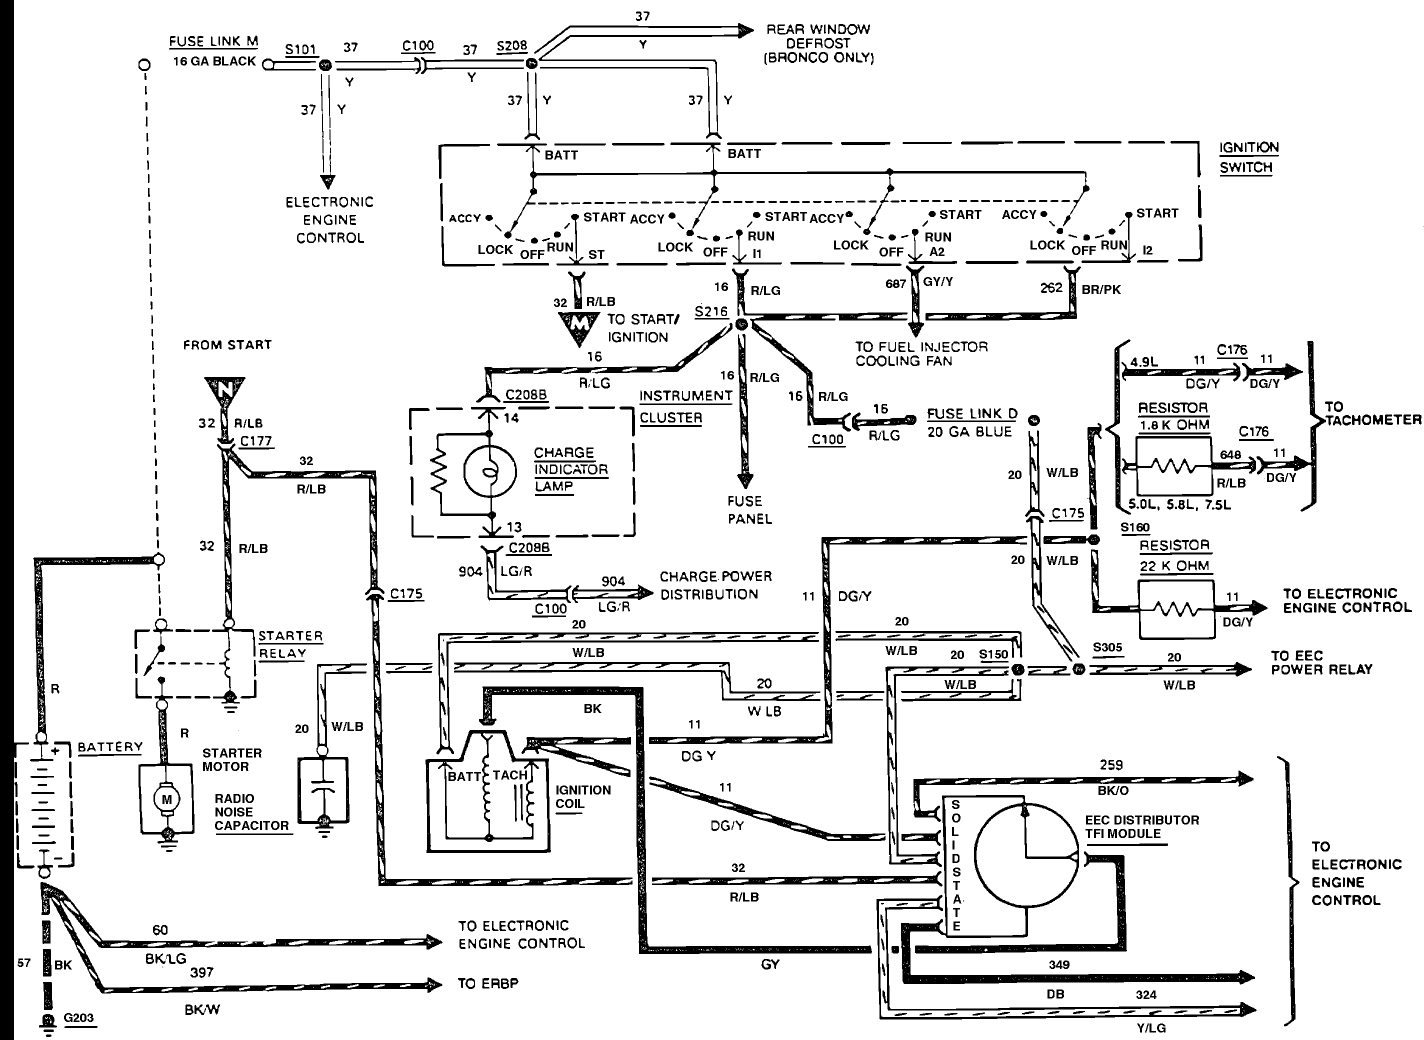 [SCHEMATICS_48IU]  1989 F350 Wiring Diagram | Wiring Diagram | 1986 Ford F350 Wiring Diagram |  | Wiring Diagram - AutoScout24